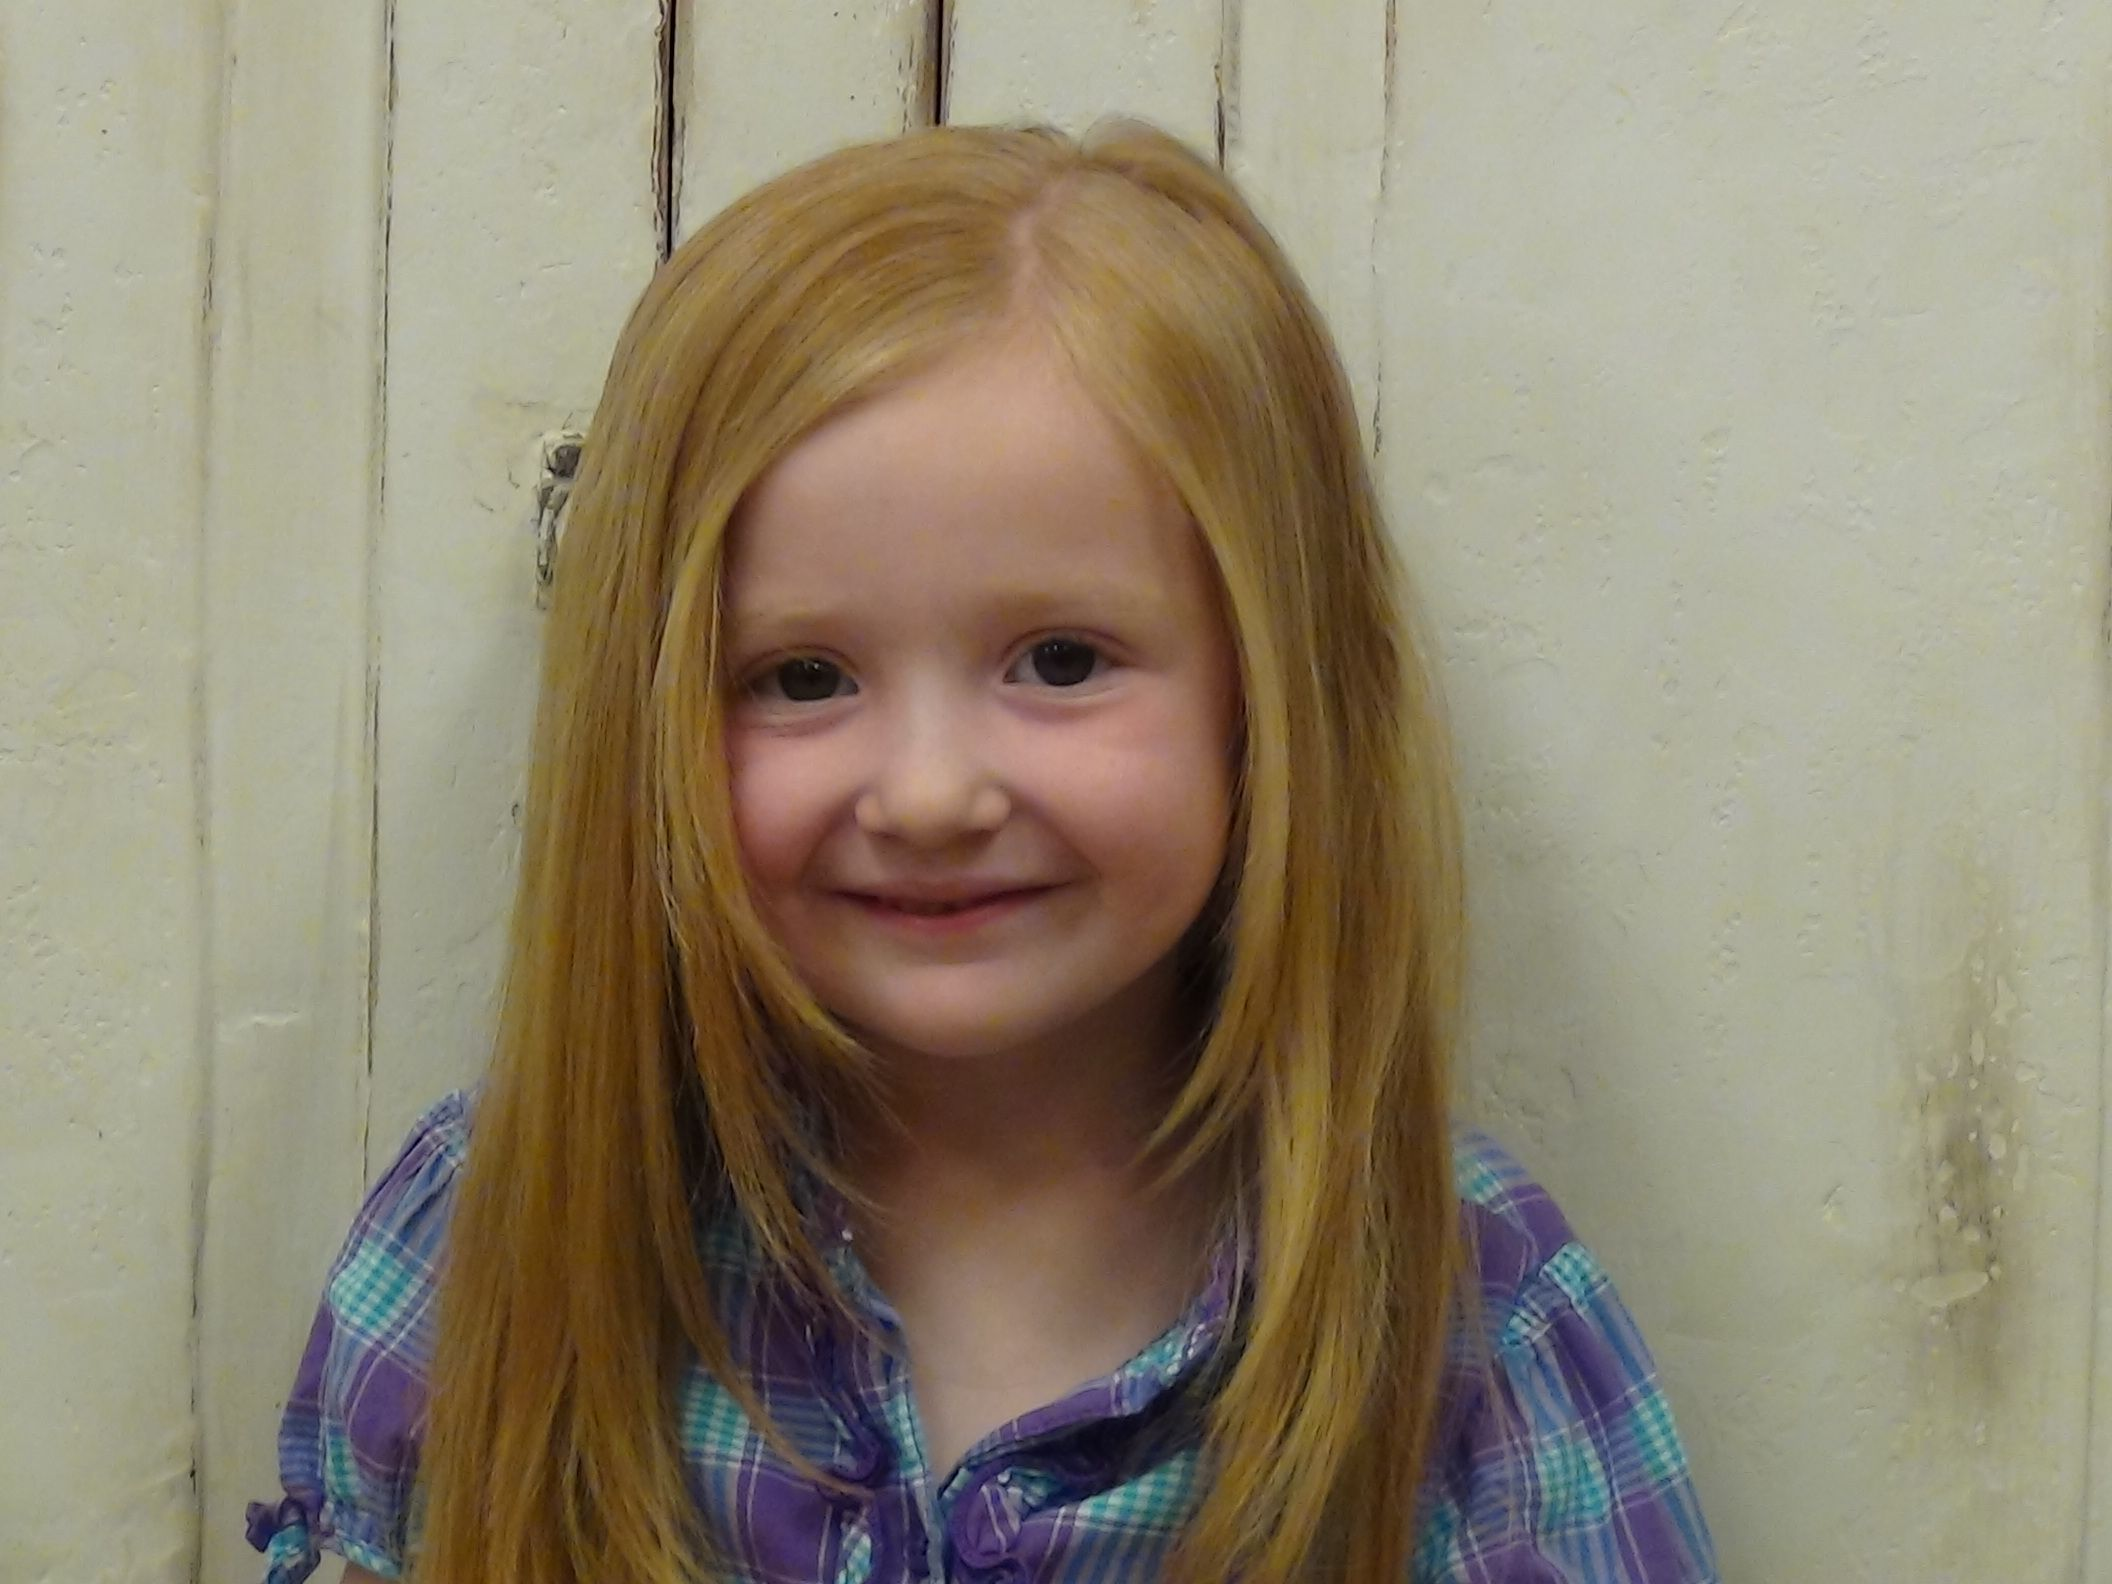 Haircut styles images cutest haircut for a little girl with long hair  boys and girls